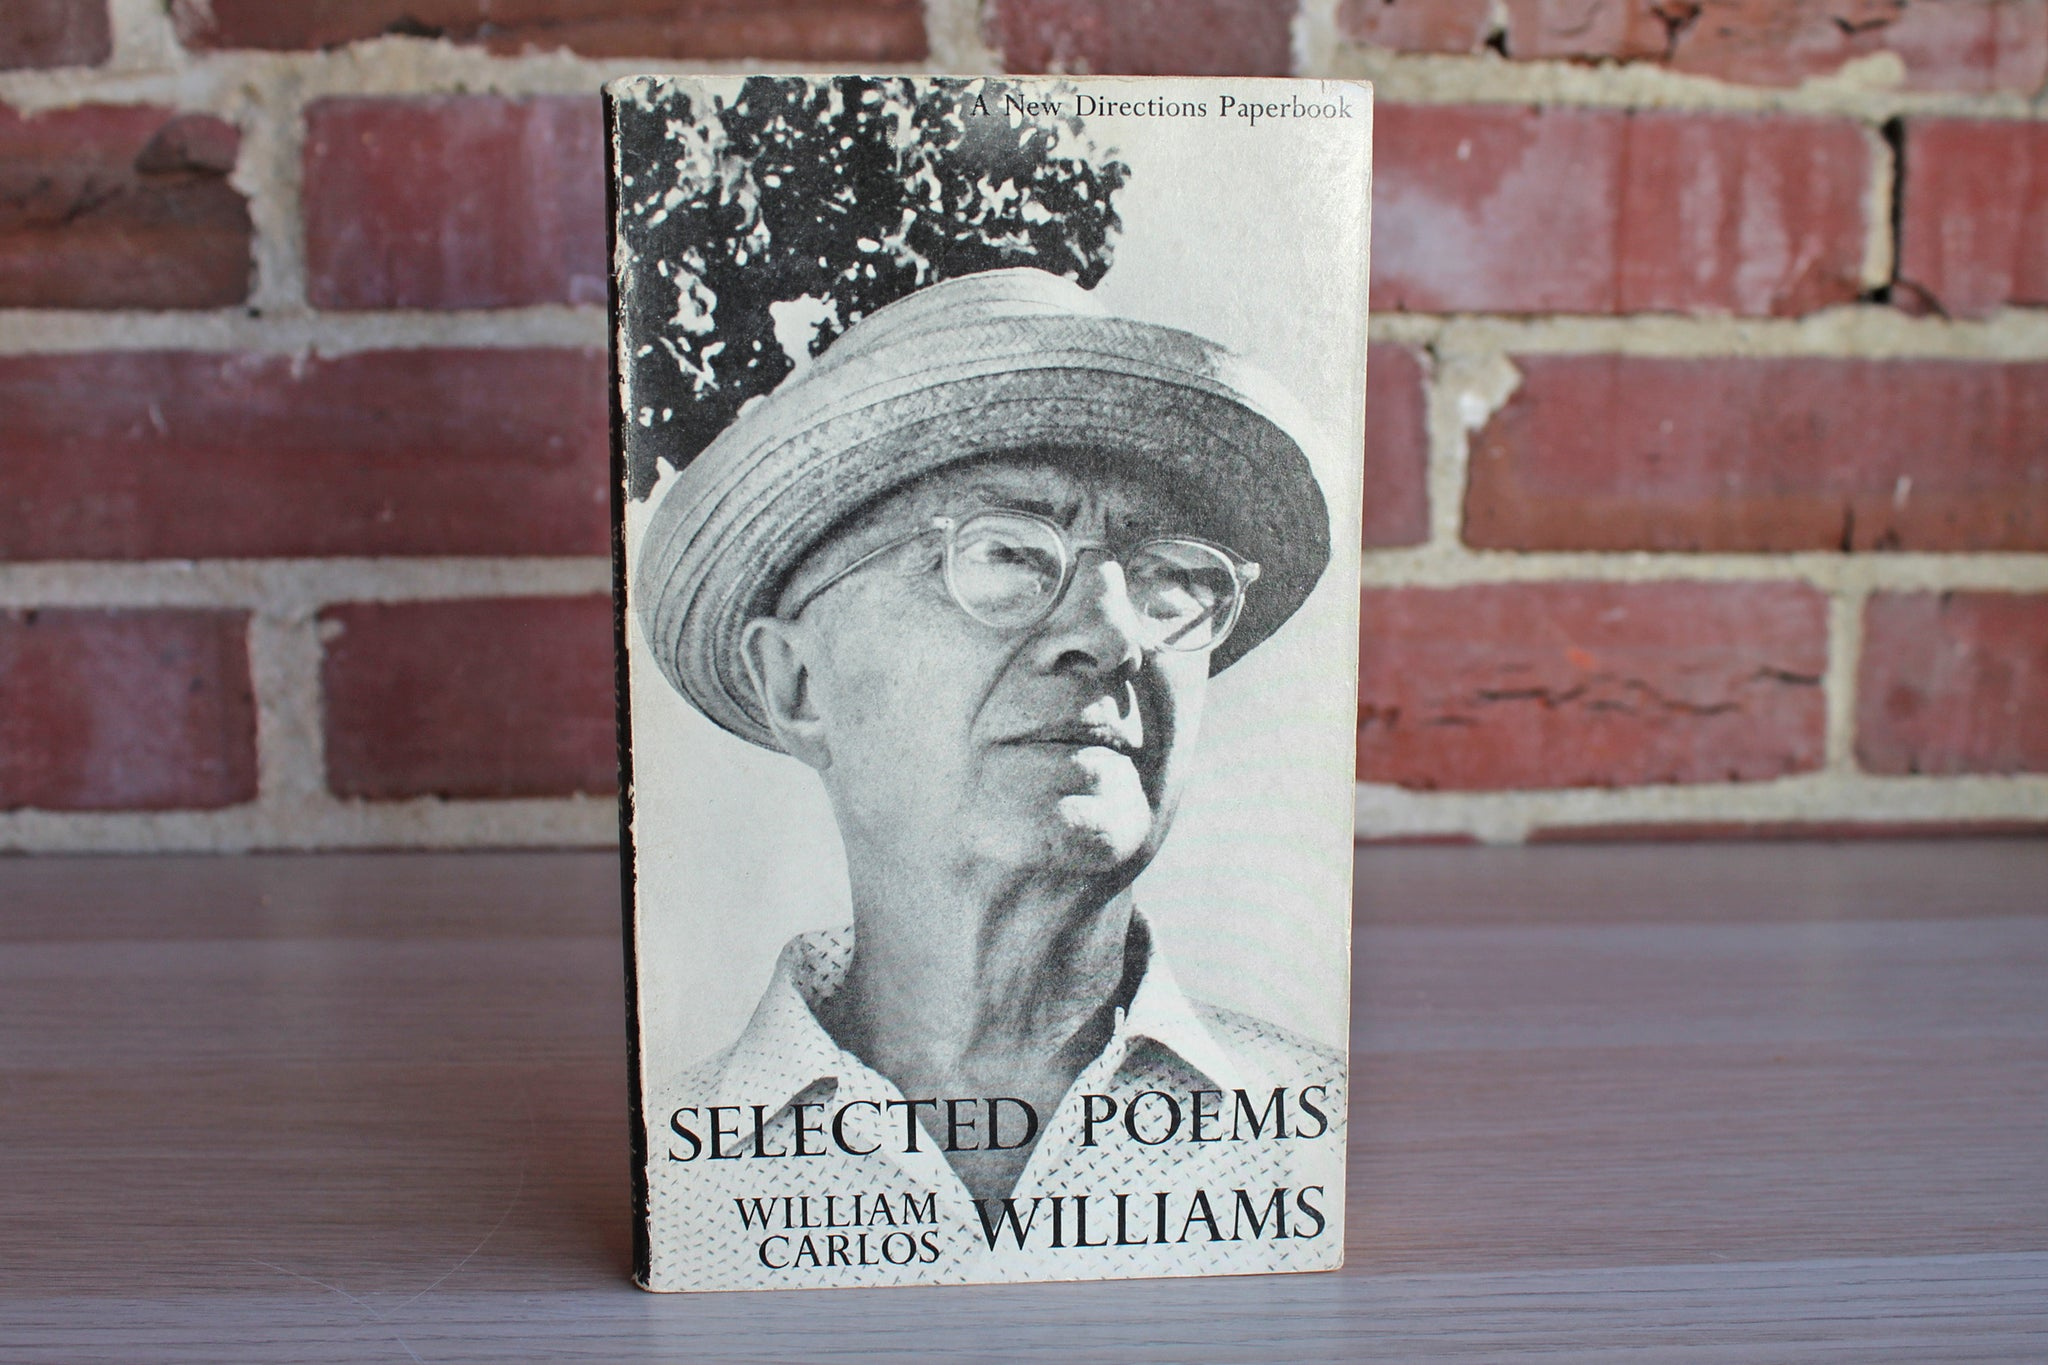 The Selected Poems of William Carlos Williams